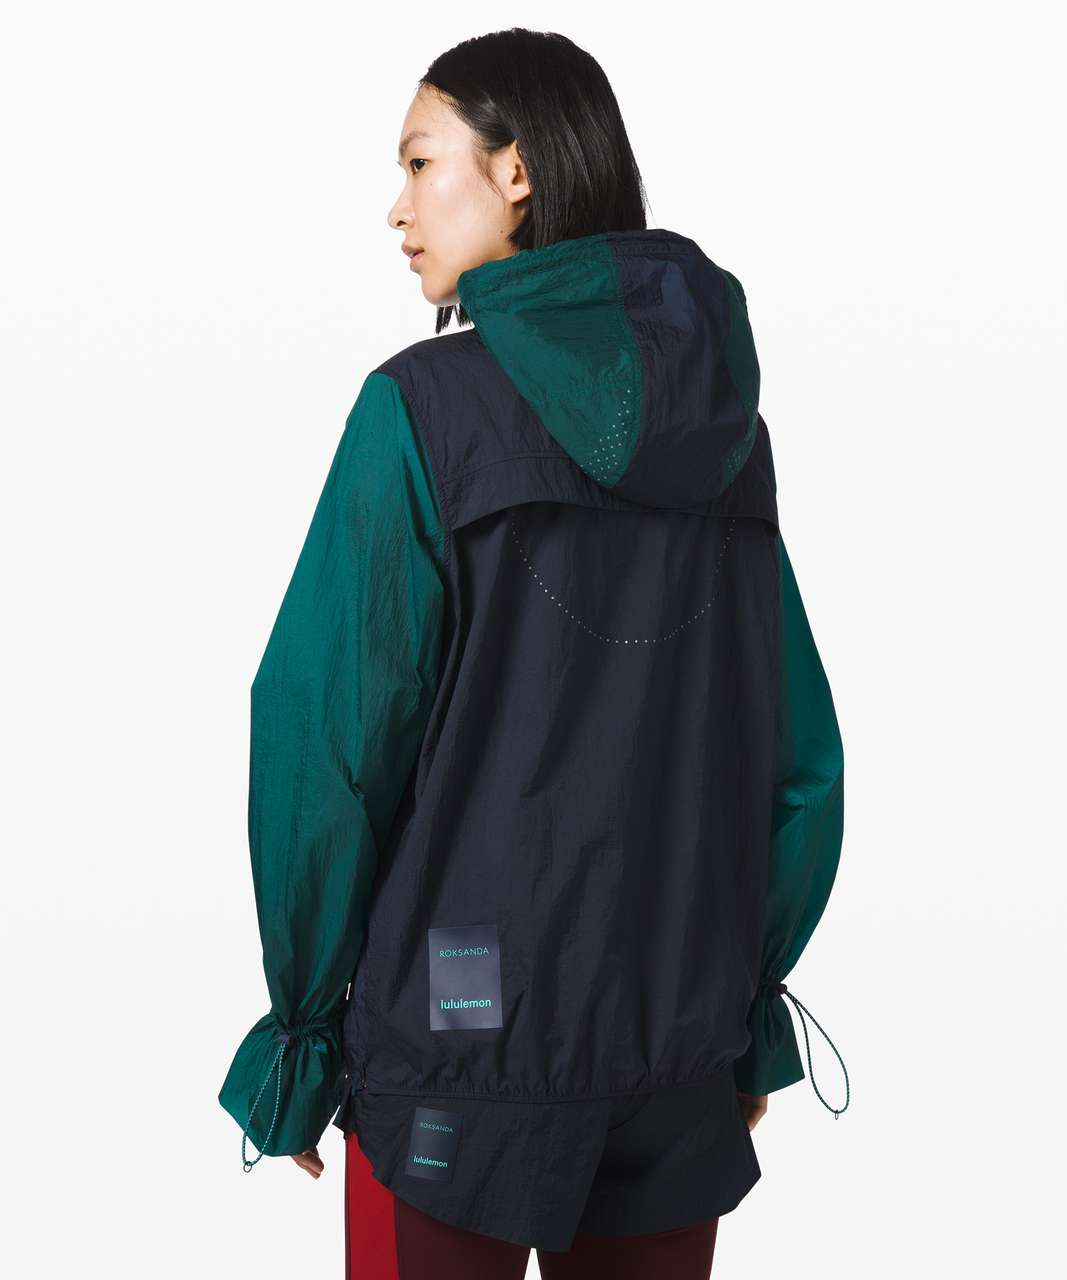 Lululemon Break New Ground 1/2 Zip *lululemon x Roksanda - True Navy / Emerald / Emerald